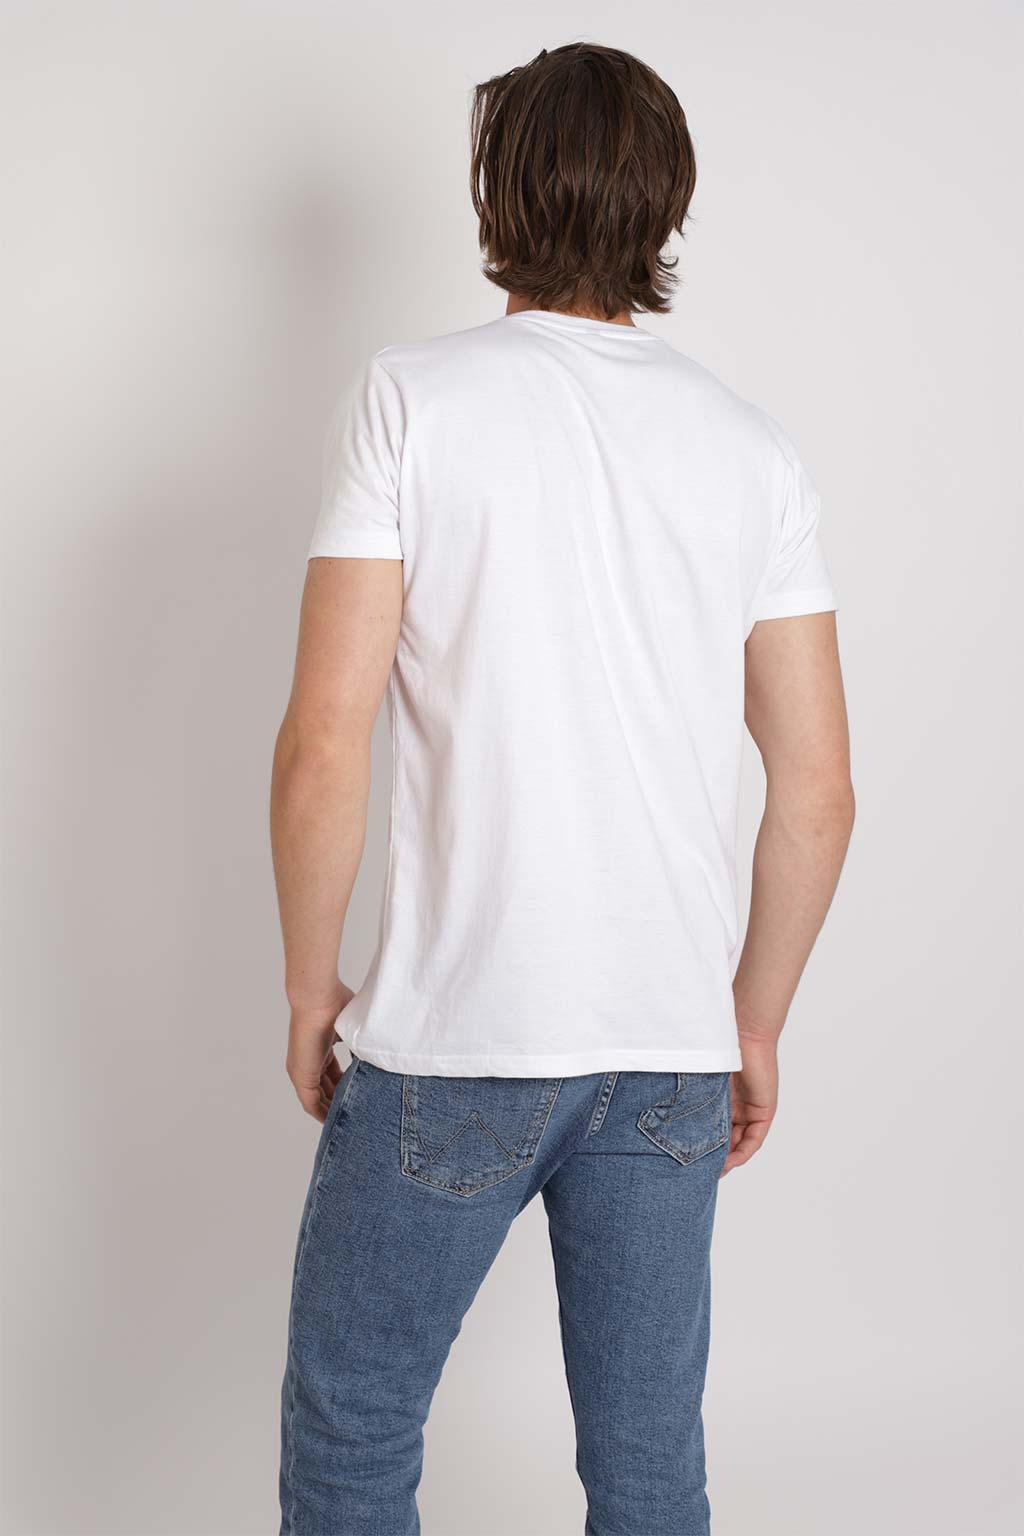 Charlie Large Back T Shirt